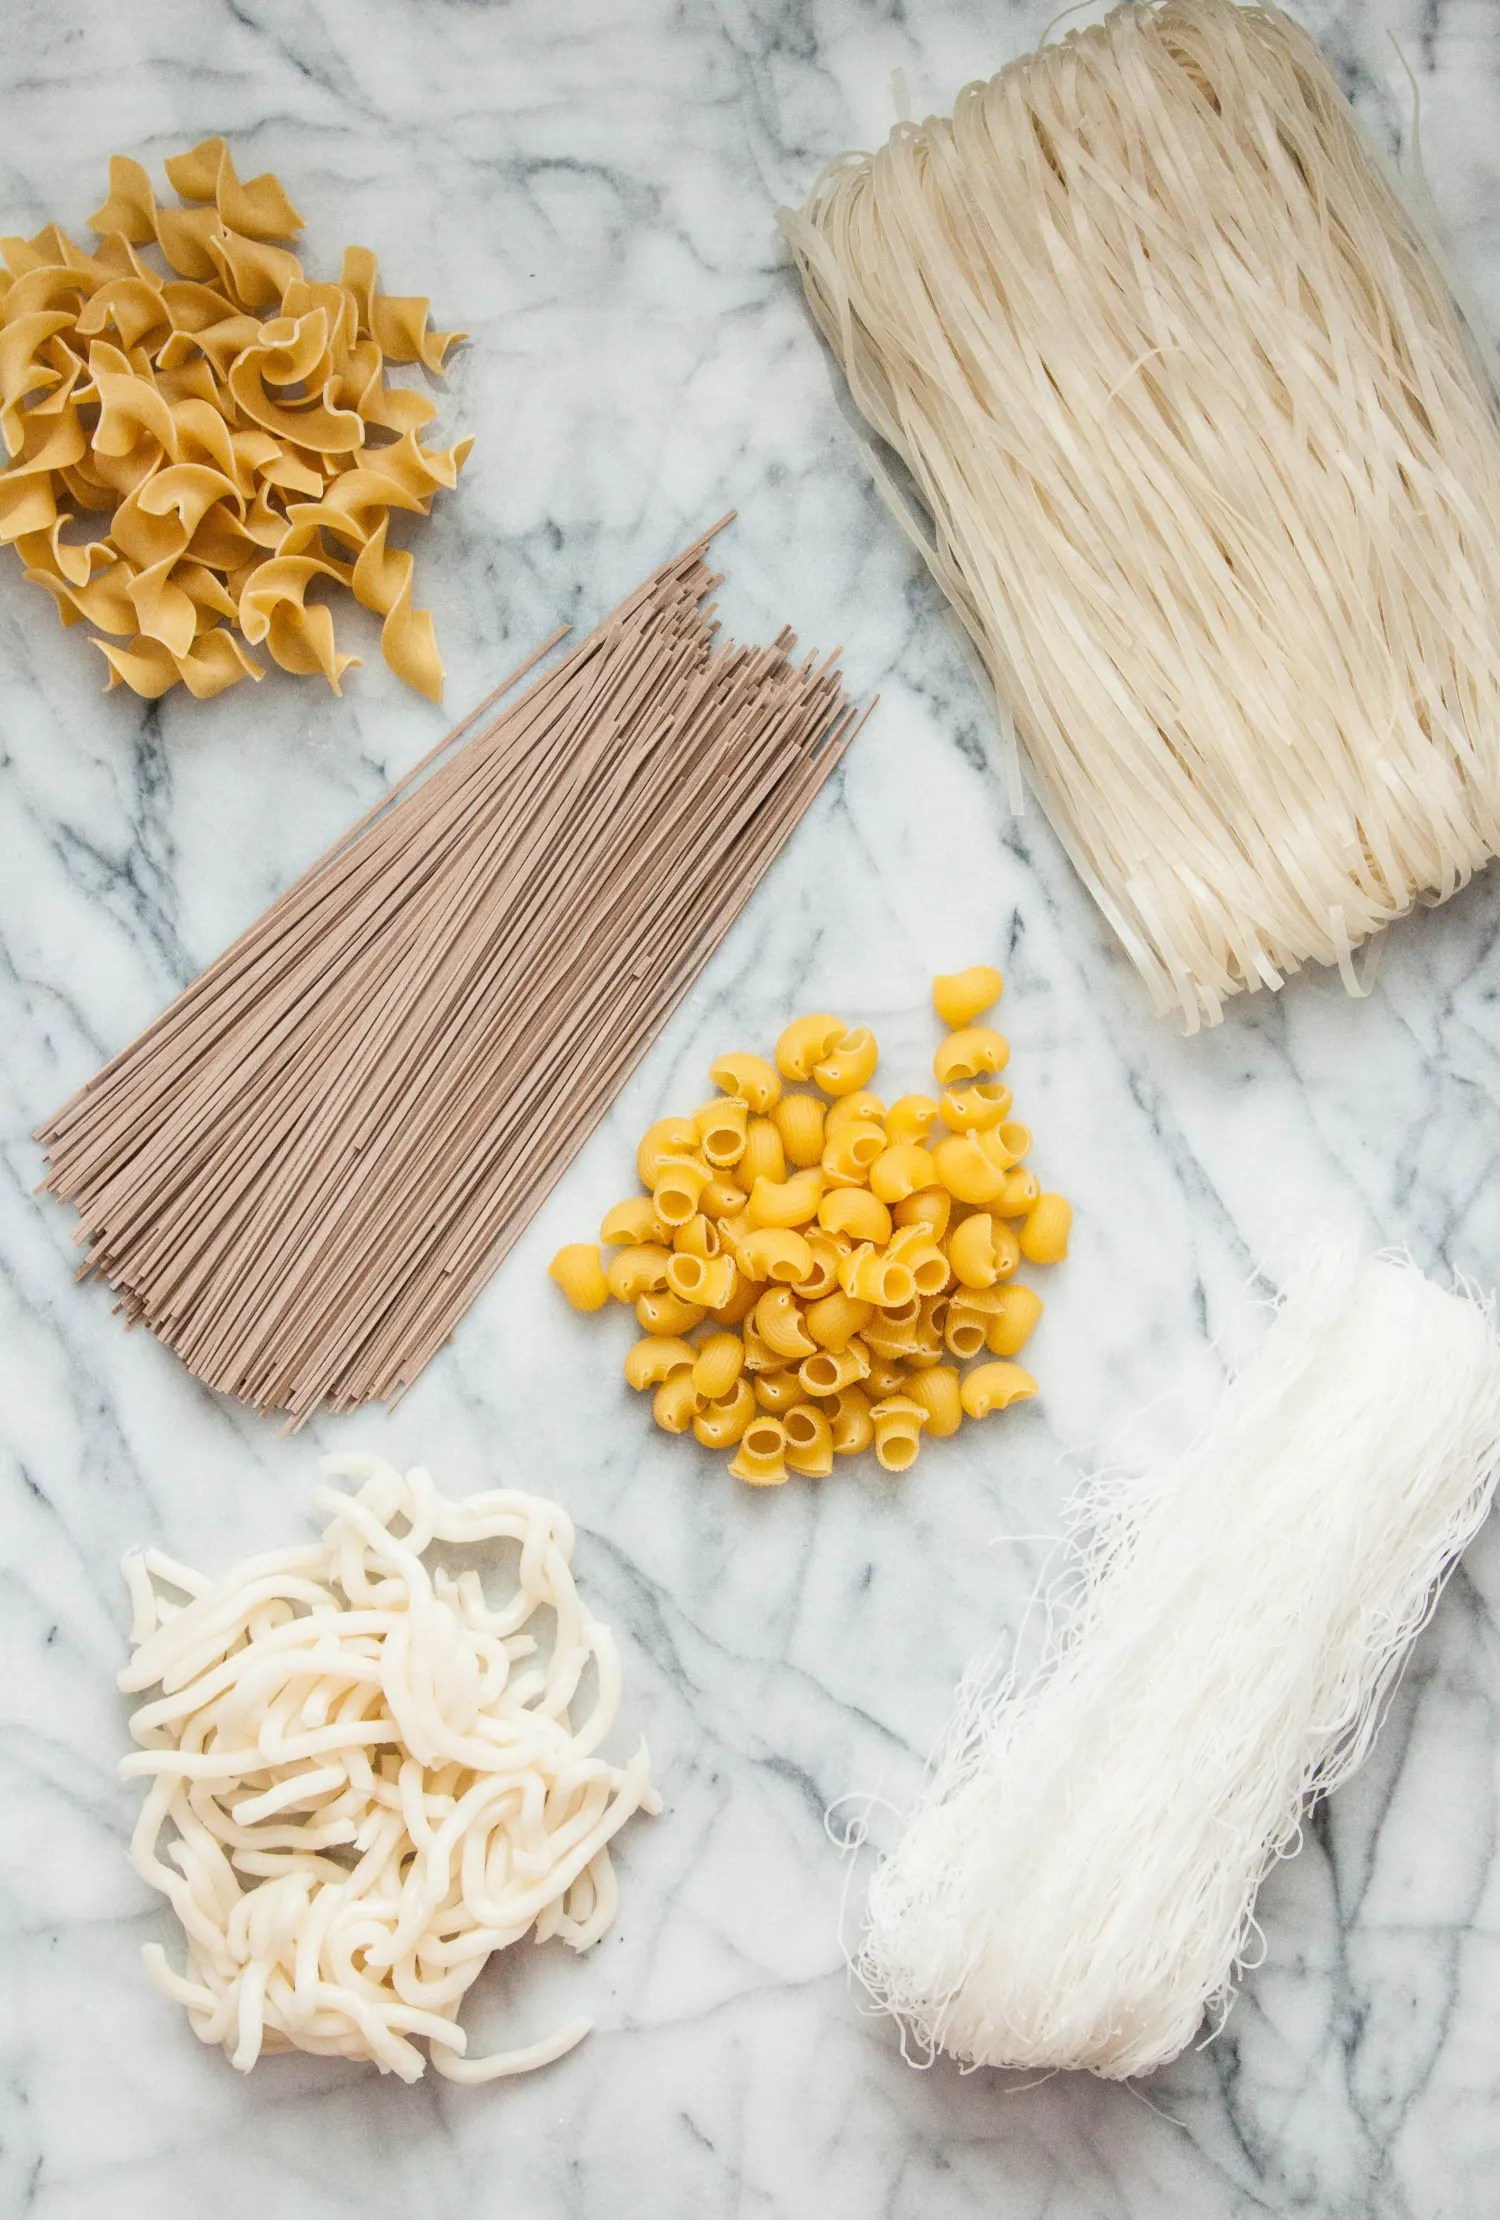 Your Guide To Picking The Best Noodles For Any Type Of